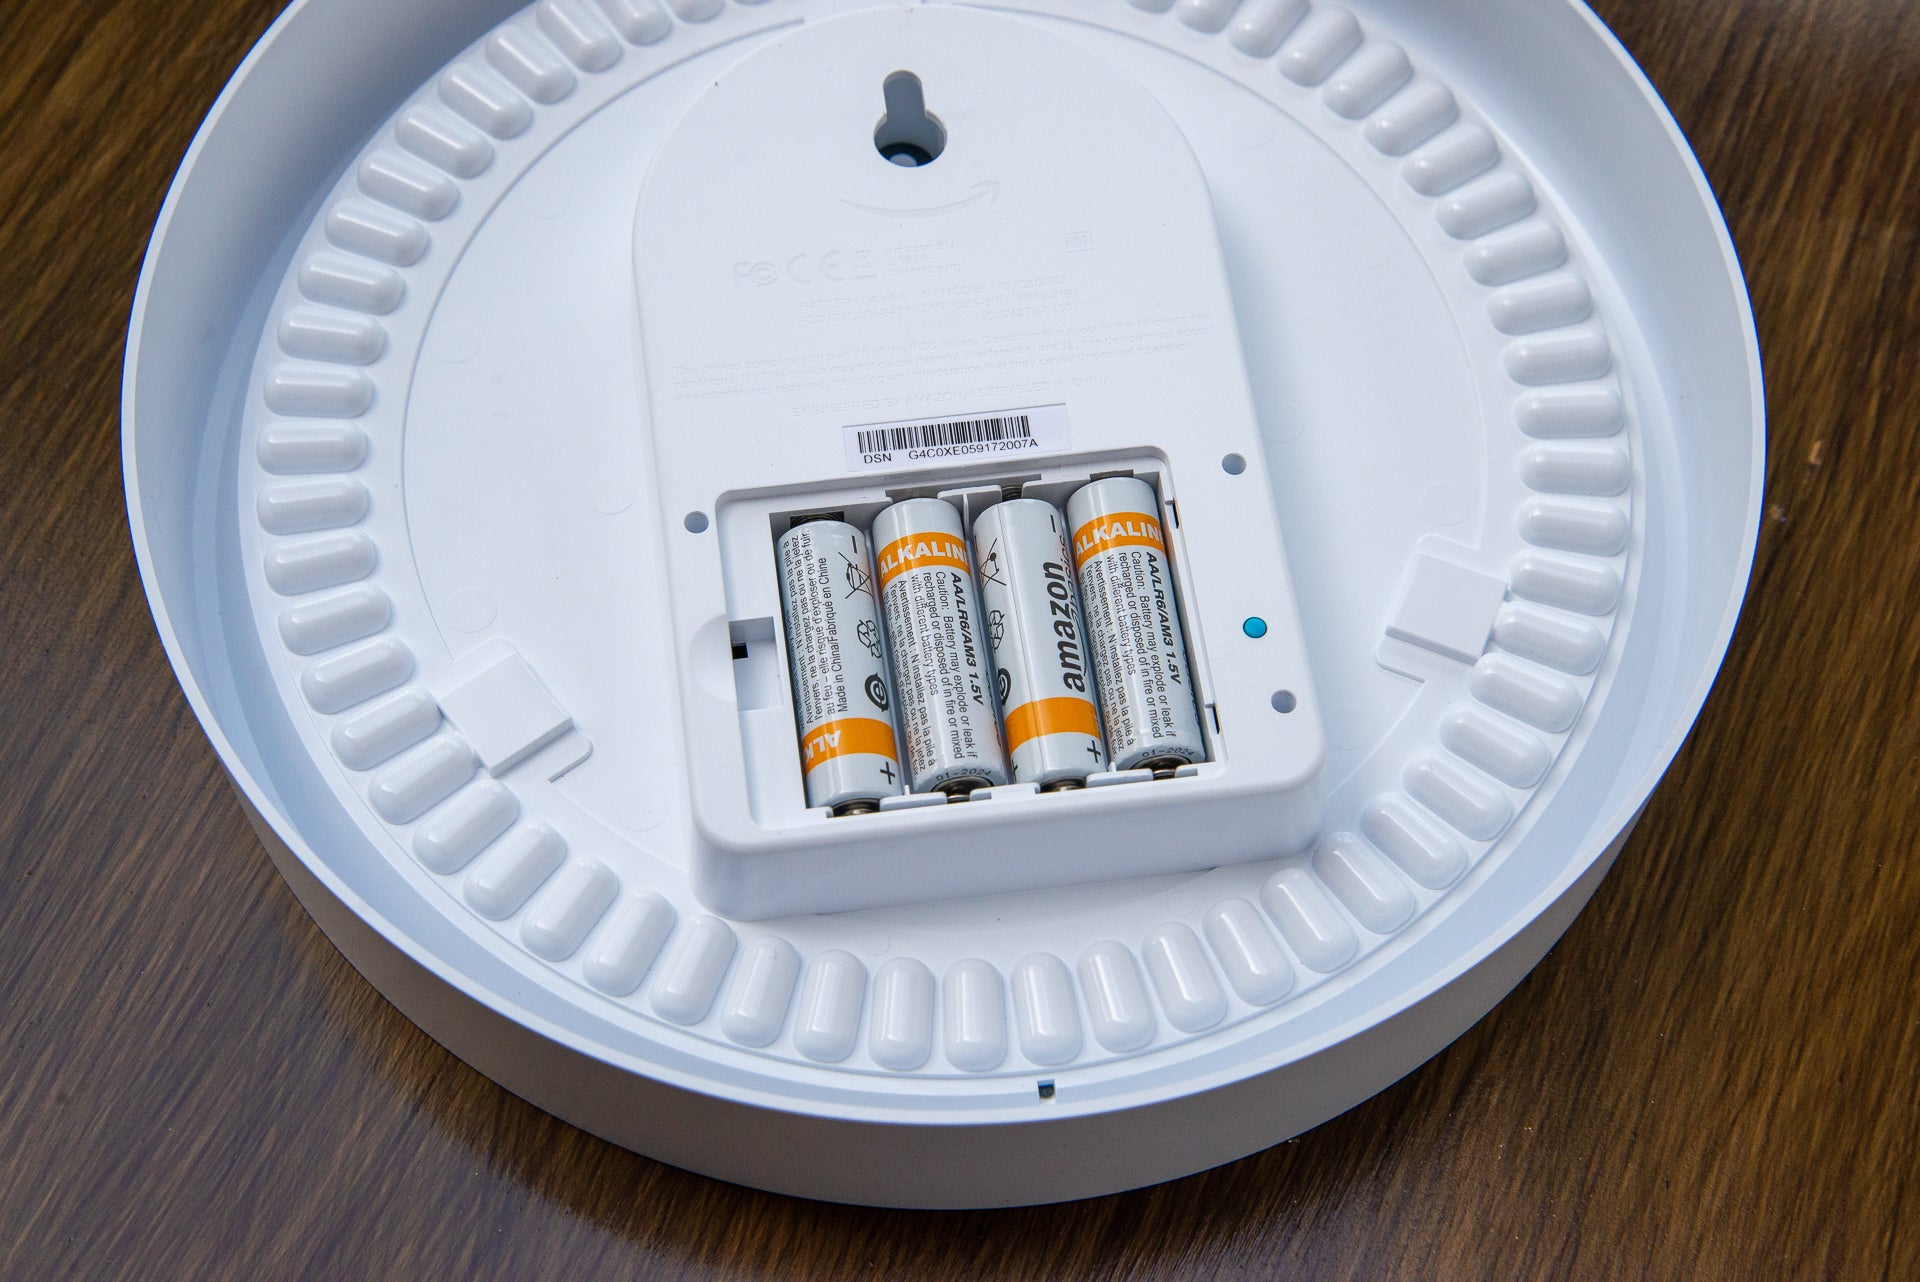 Button and batteries from the Amazon Echo wall clock